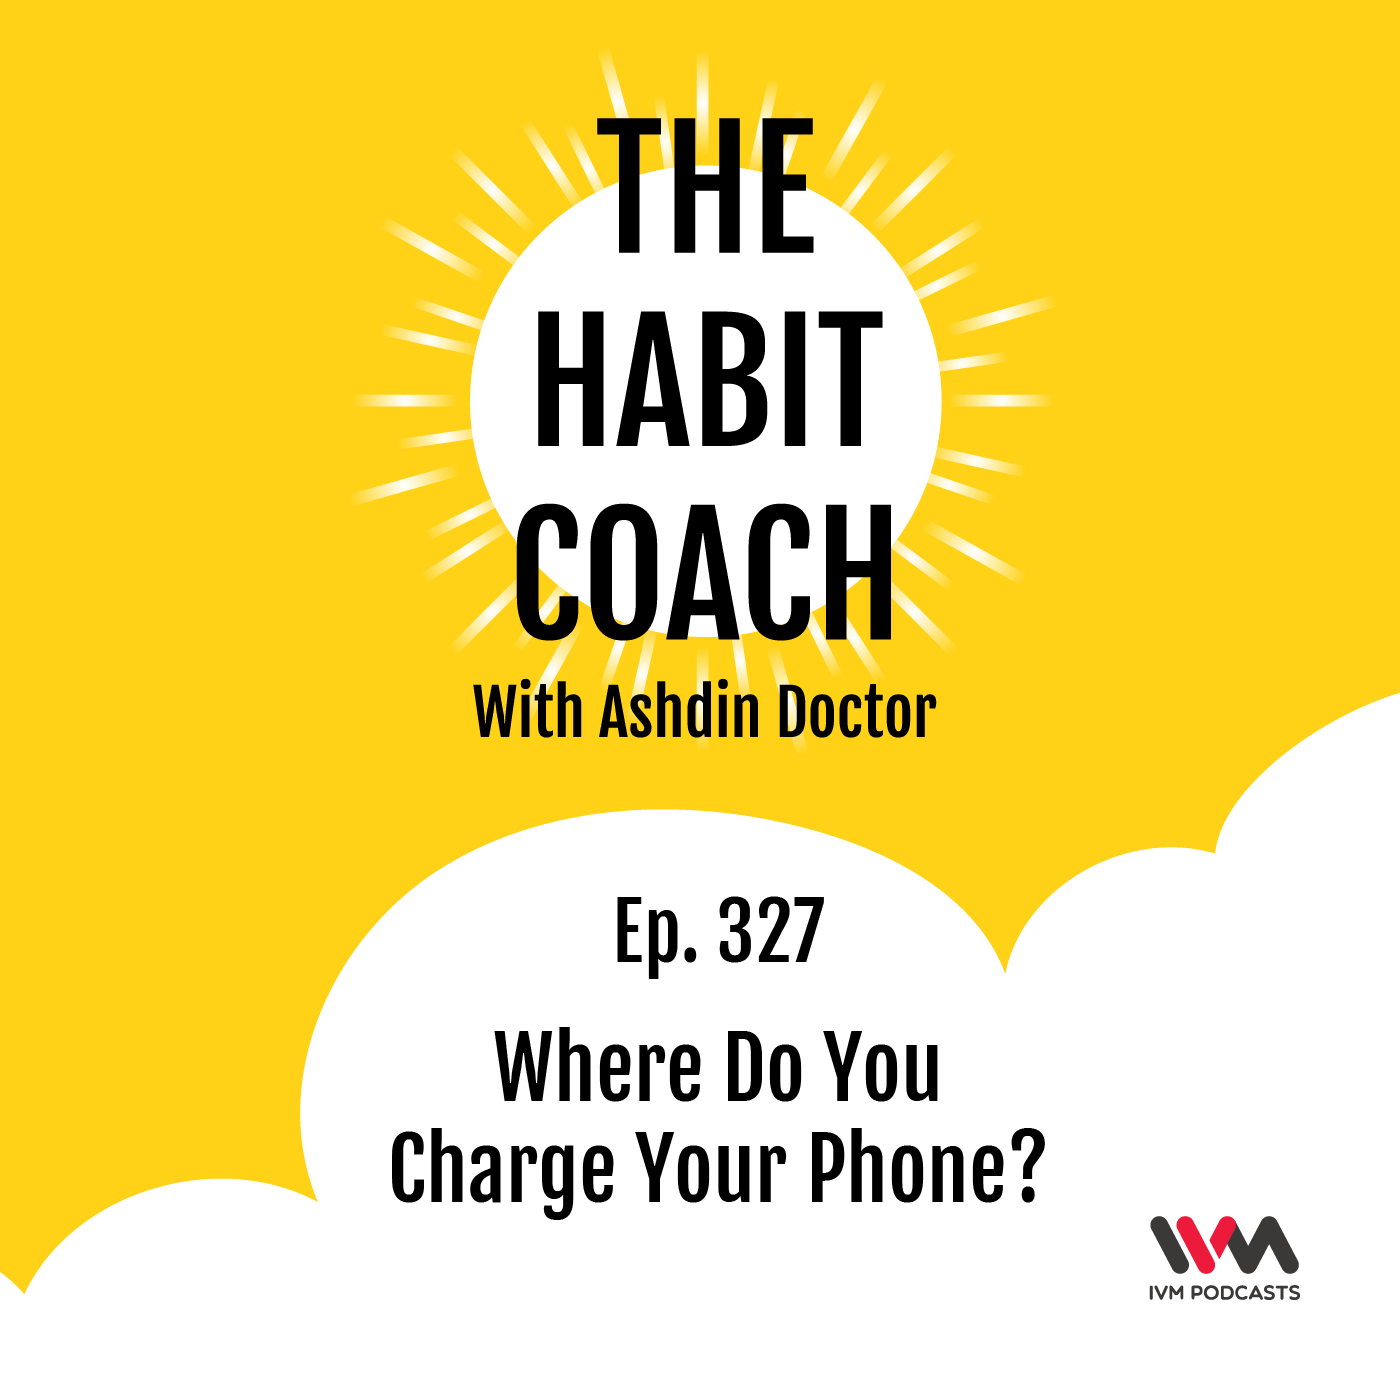 Ep. 327: Where Do You Charge Your Phone?